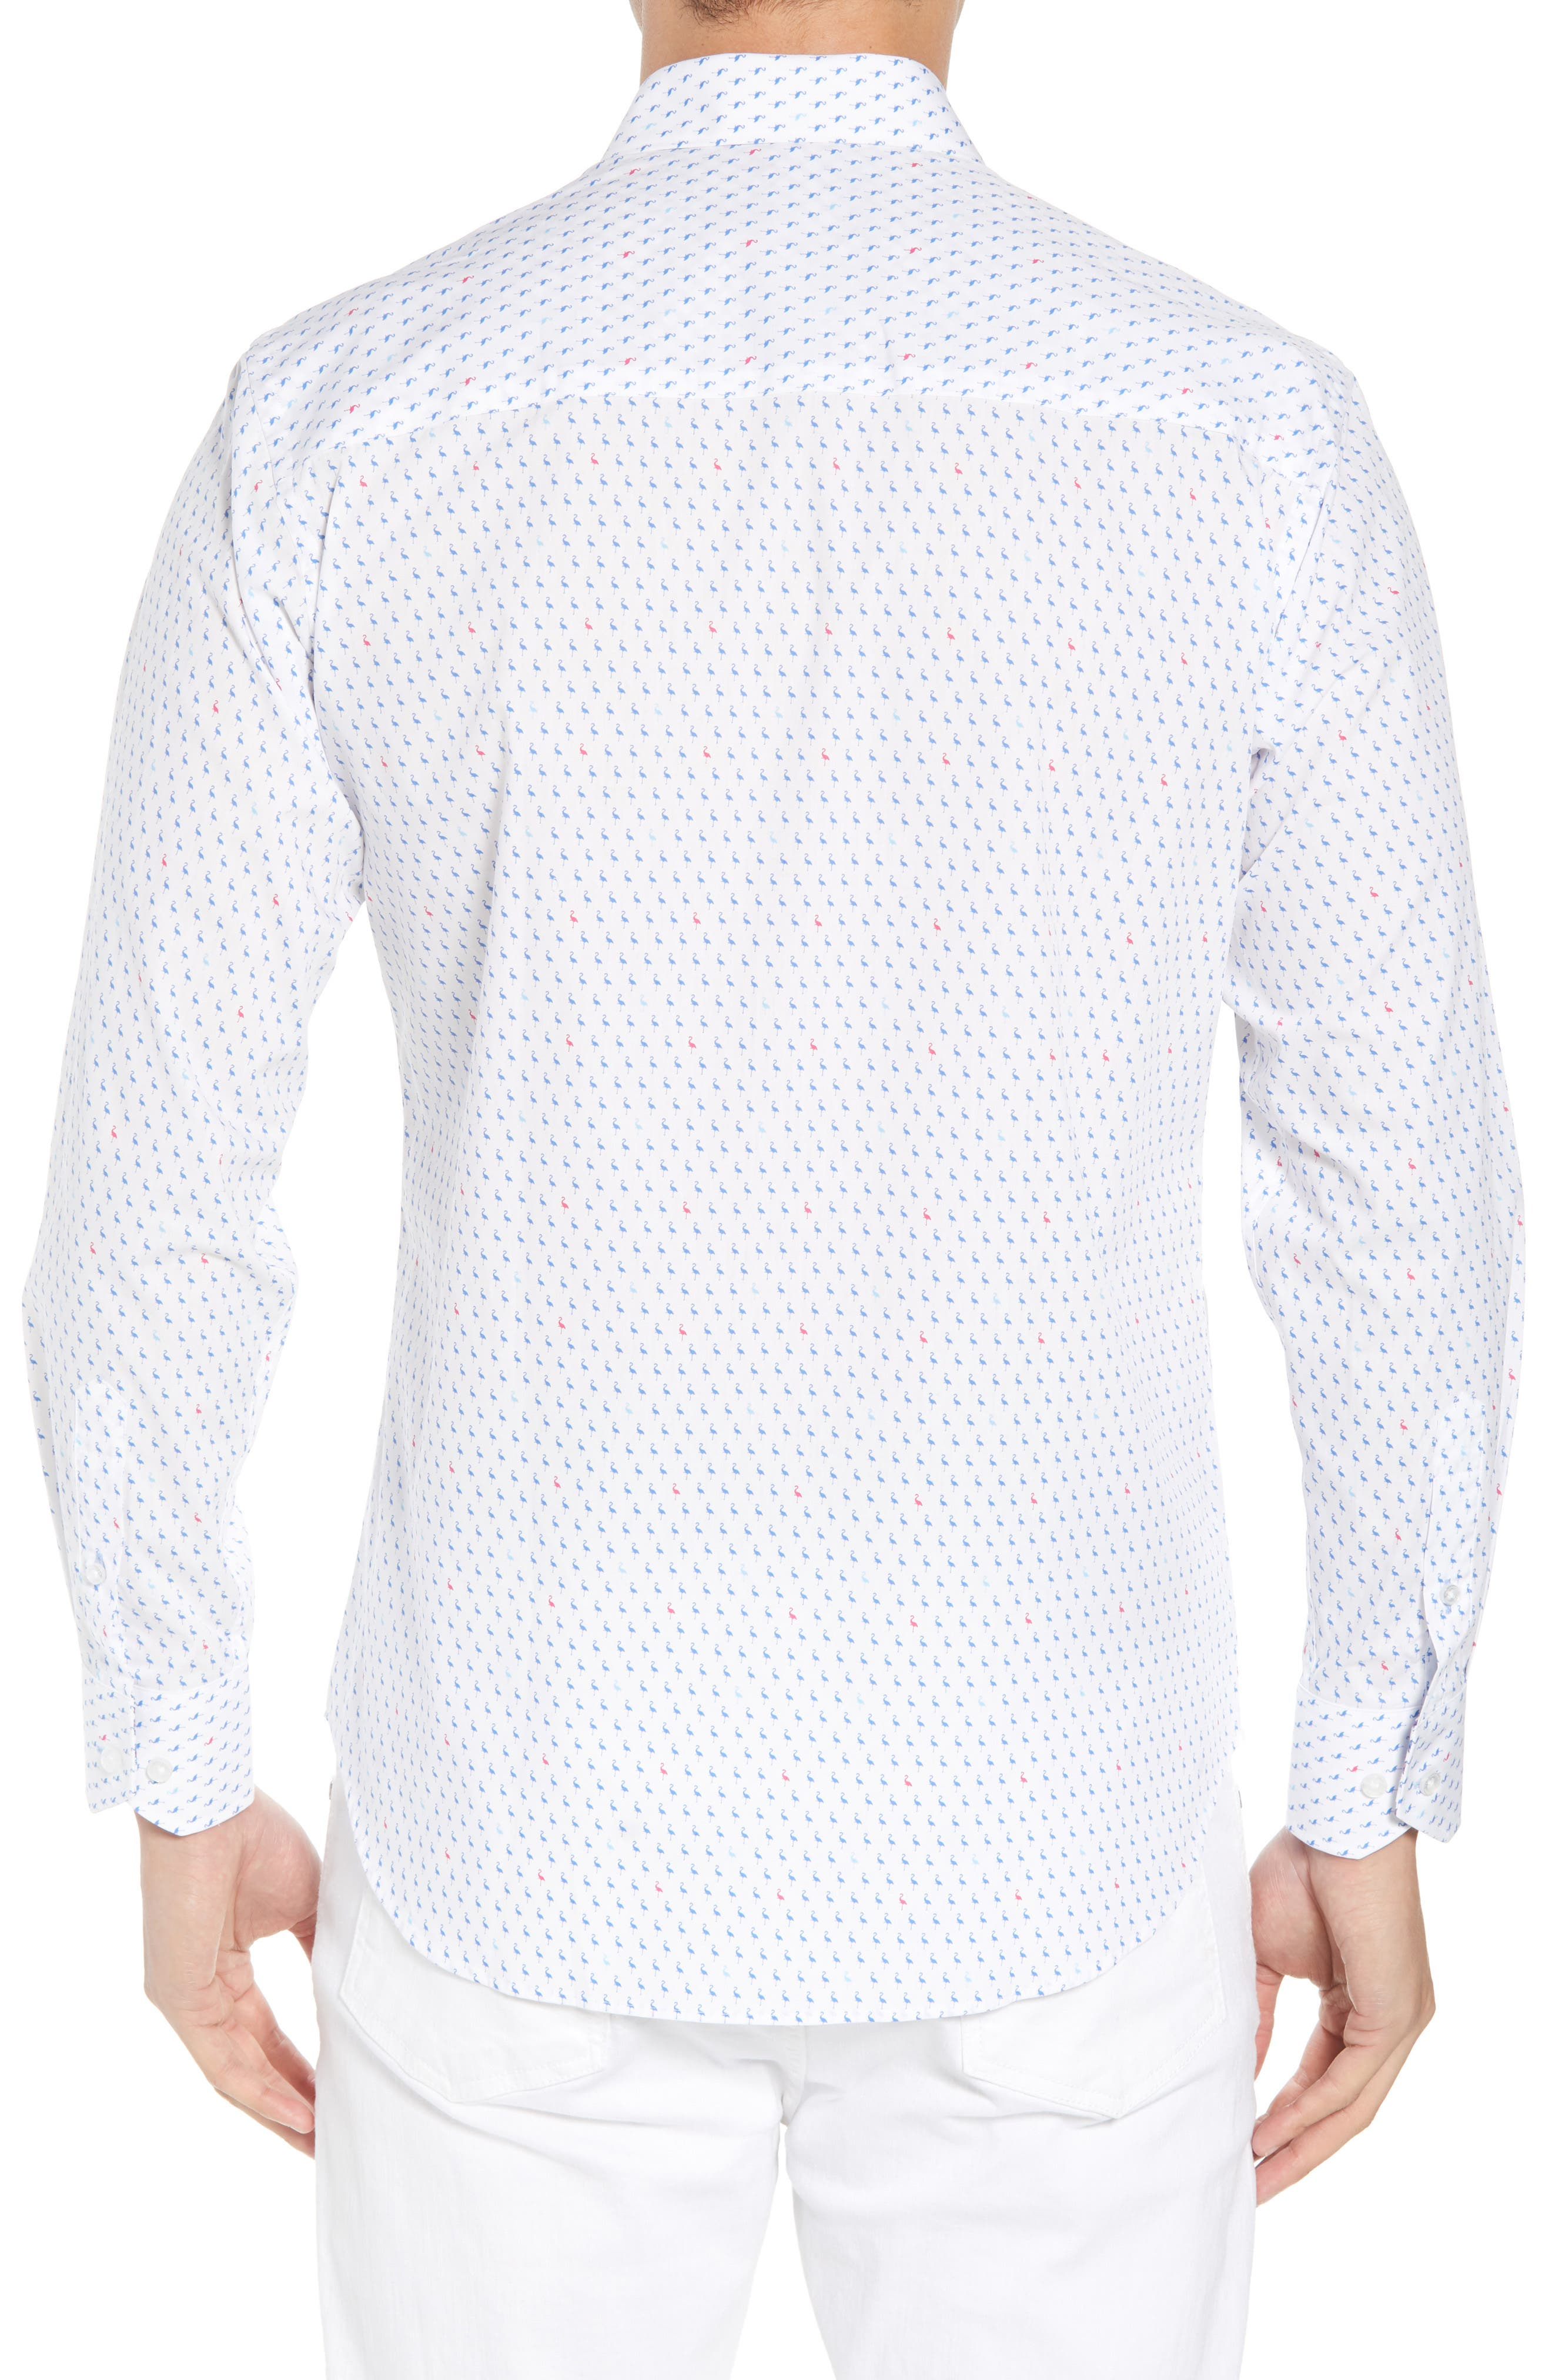 Auden Regular Fit Print Sport Shirt,                             Alternate thumbnail 2, color,                             490